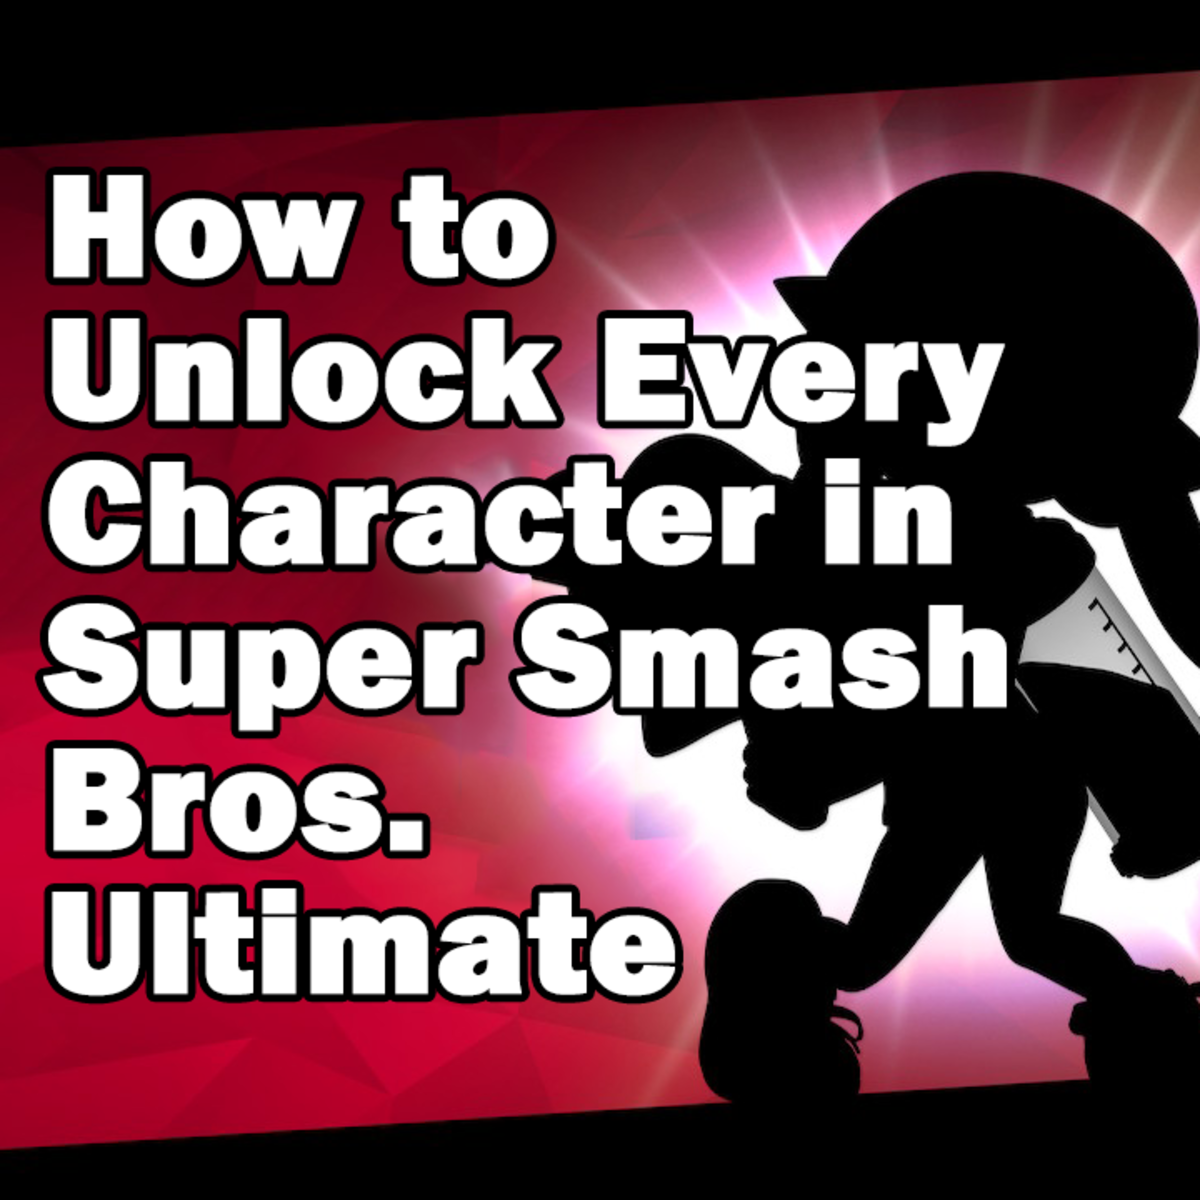 How to Unlock Every Character in Super Smash Bros. Ultimate on Nintendo Switch